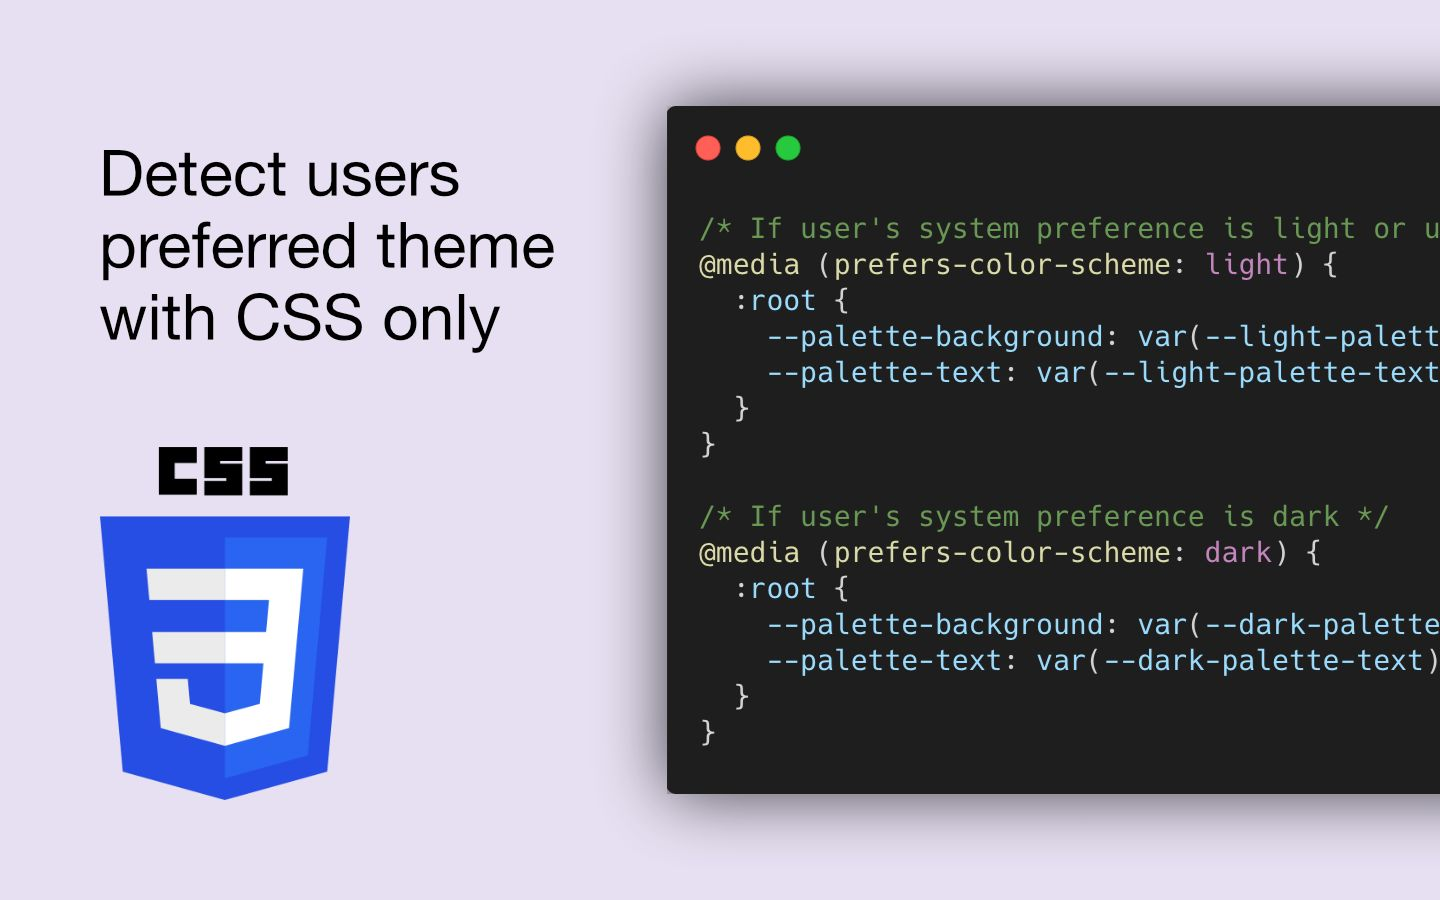 Detecting The User's Color Scheme Preference With CSS